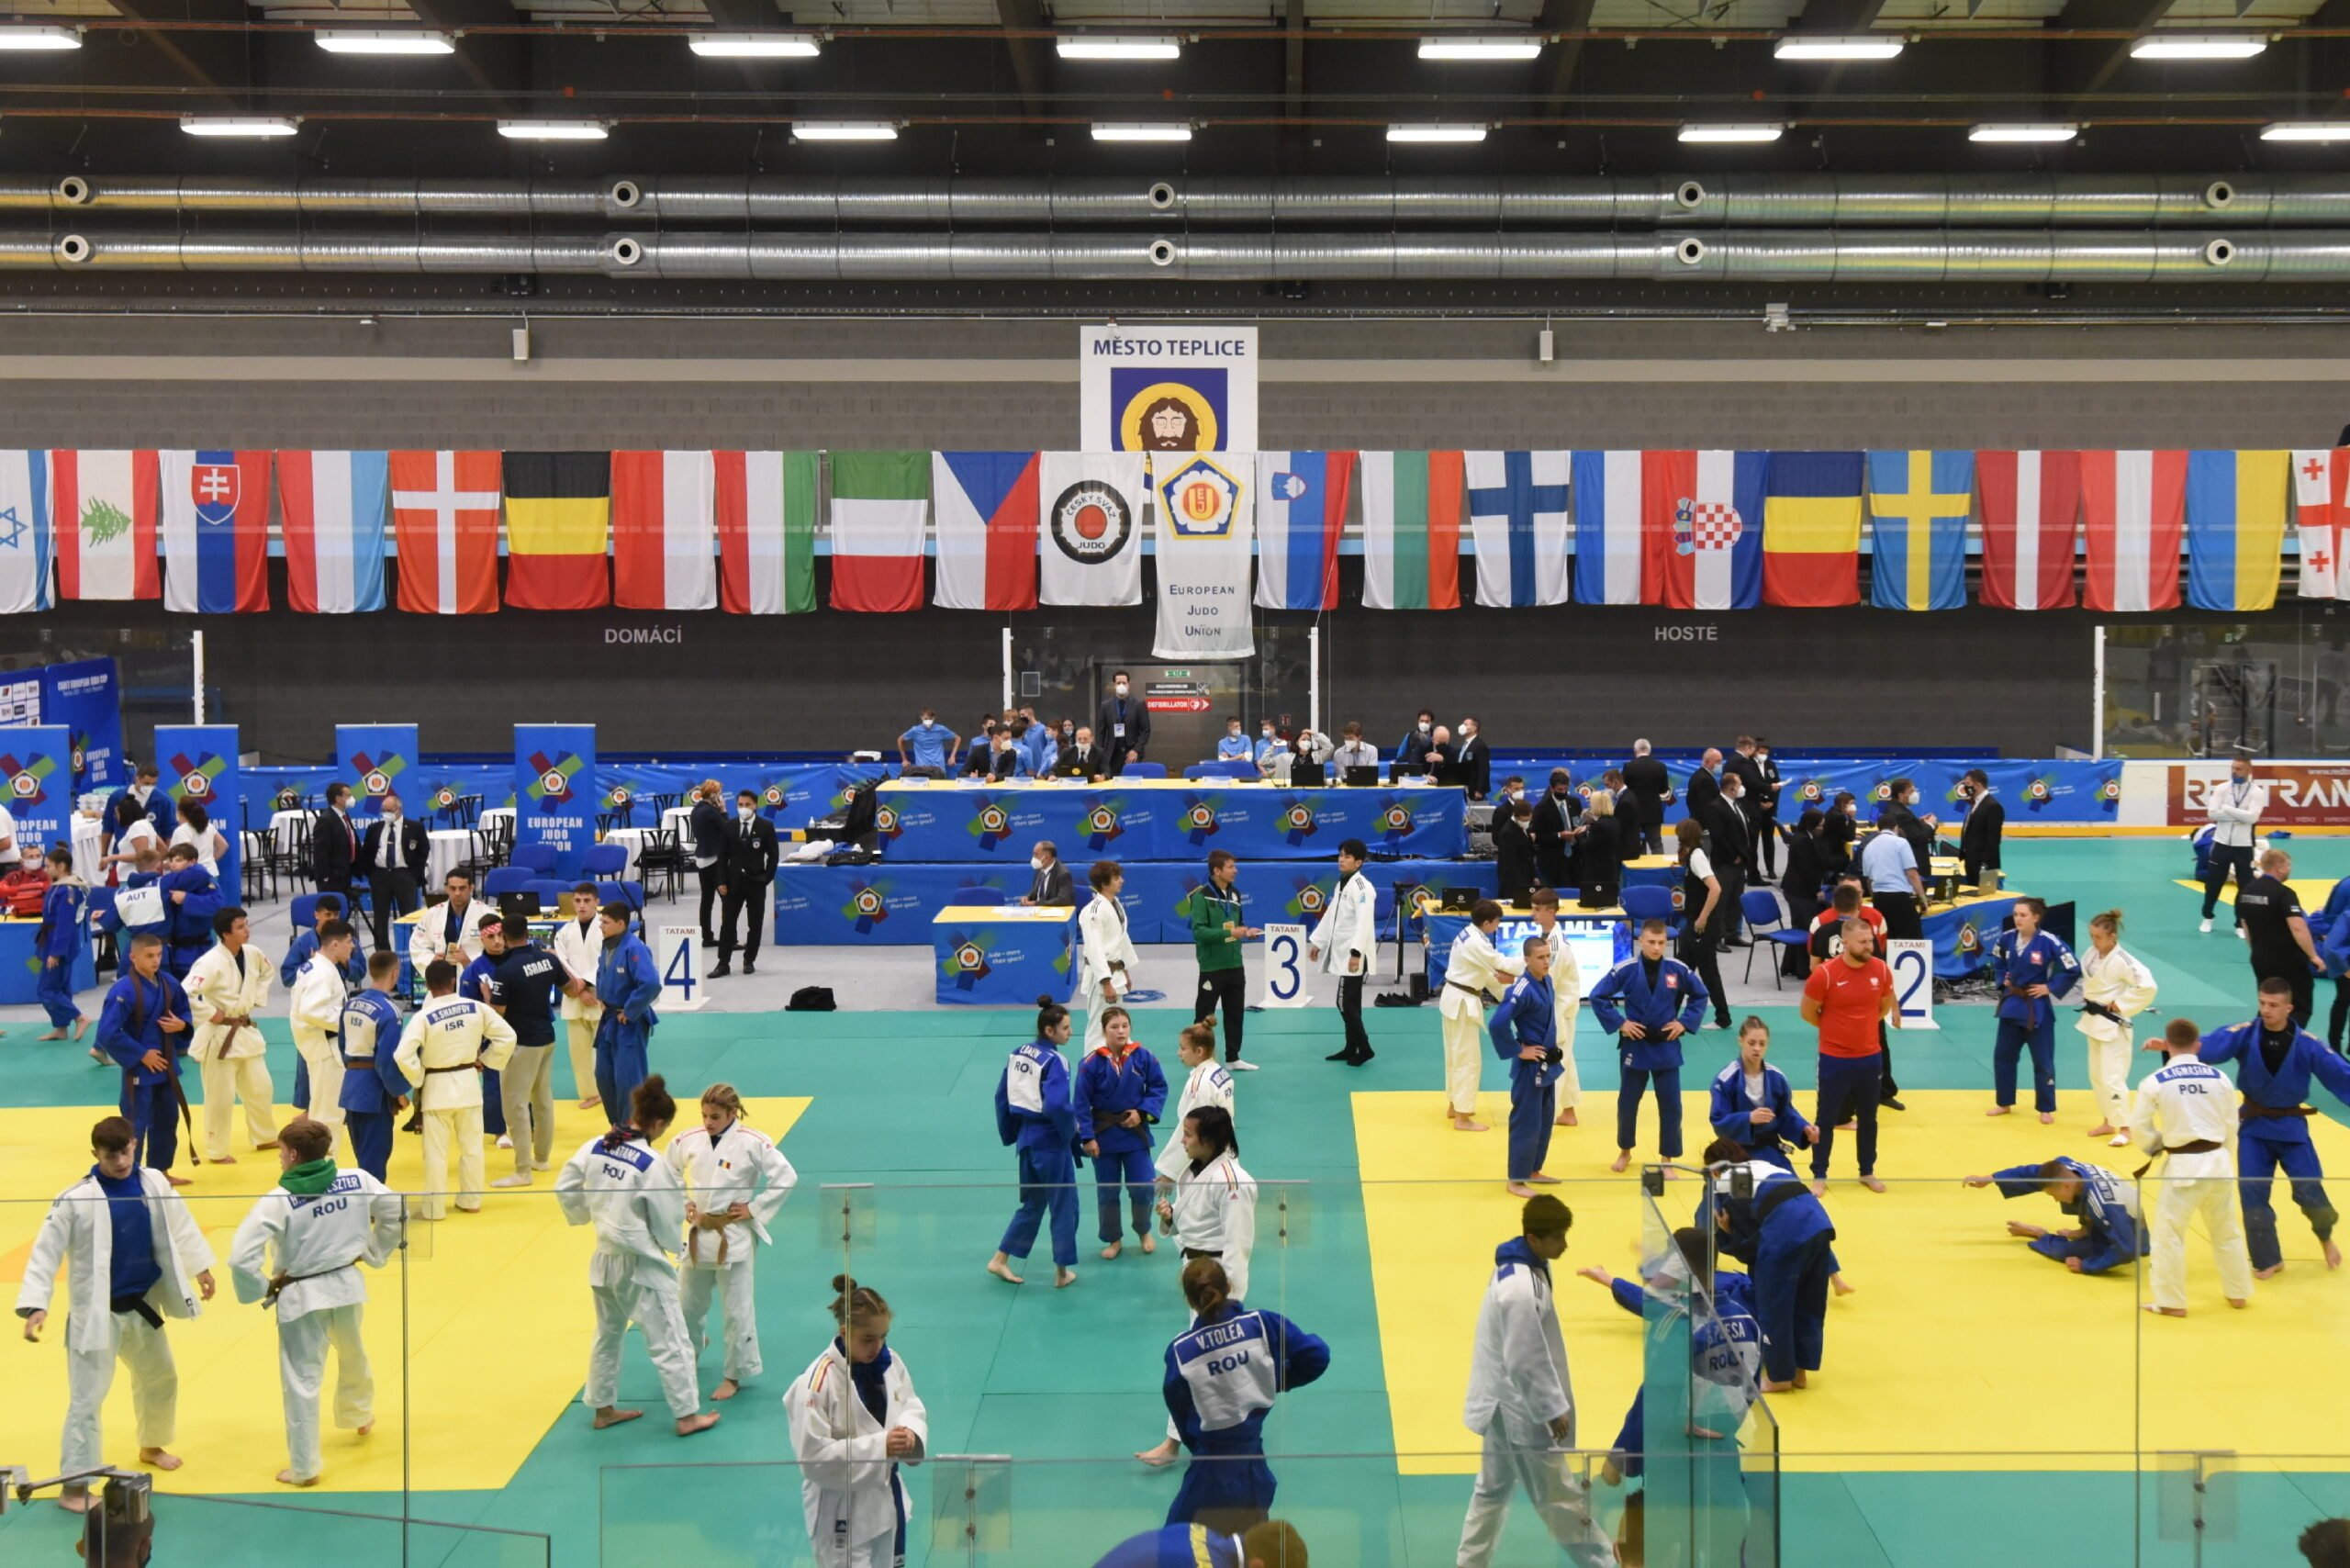 COMPETITION RETURNS TO CZECH REPUBLIC WITH JUNIORS